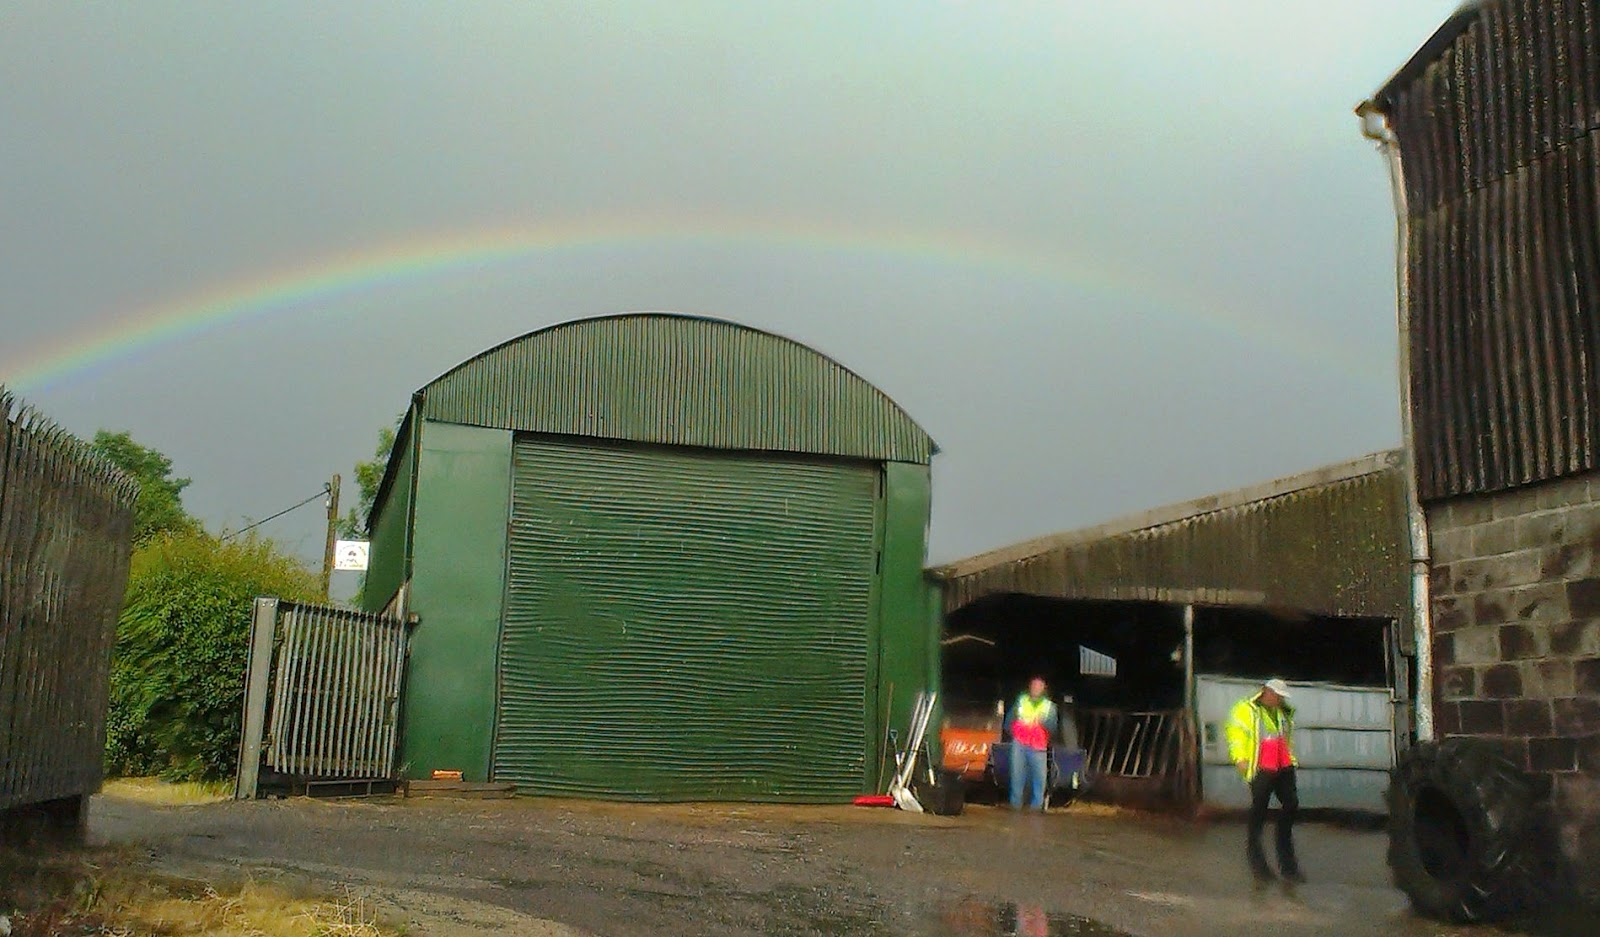 Rainbow over Pilton